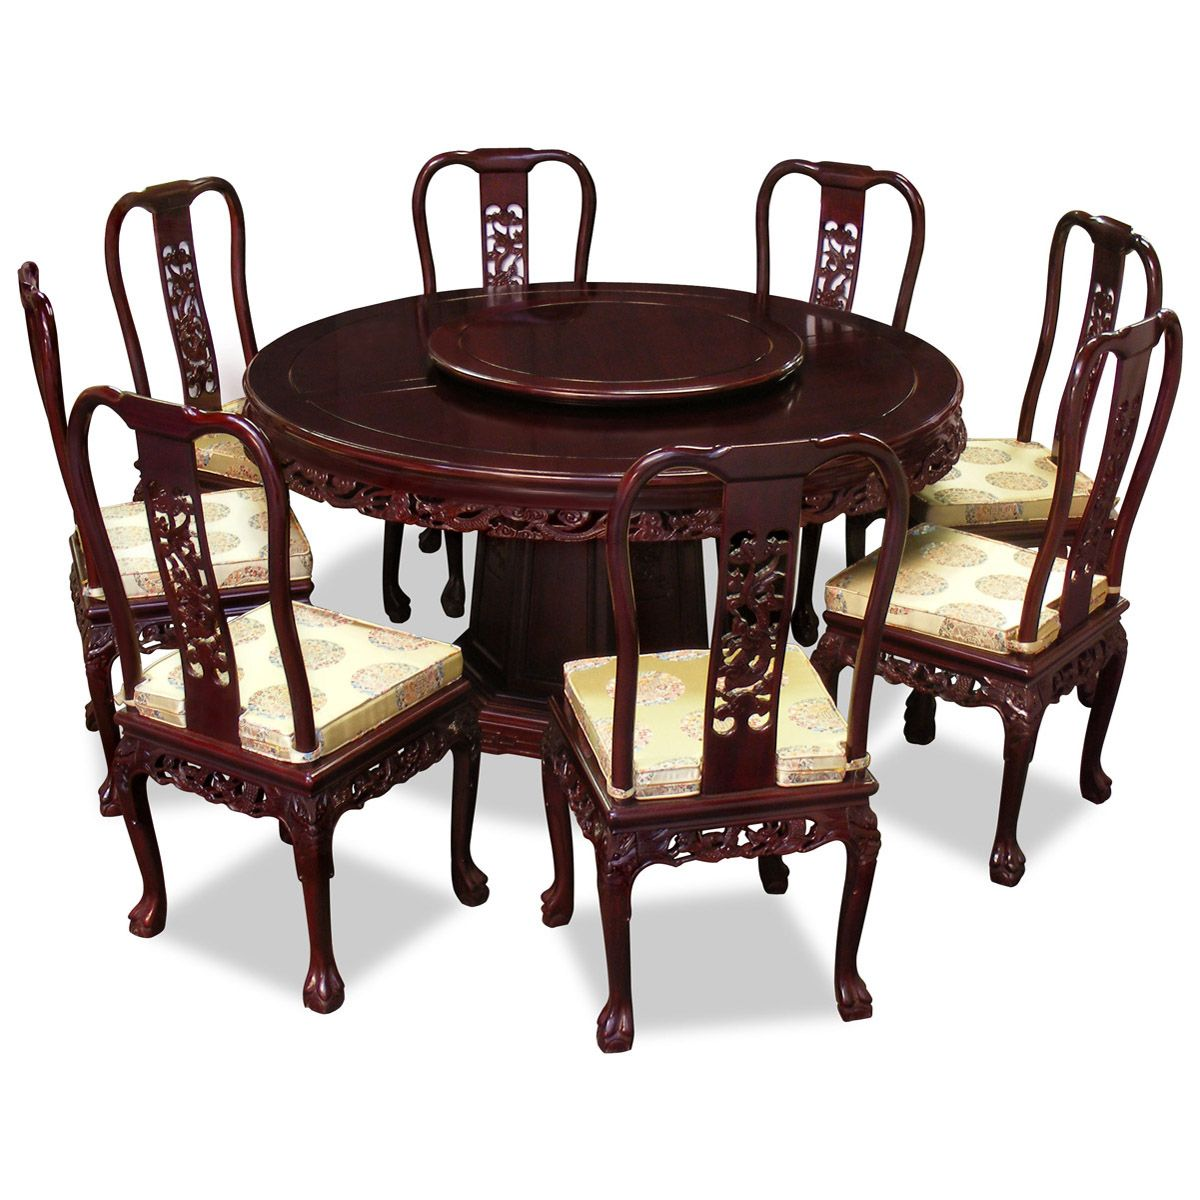 60in Rosewood Imperial Dragon Design Round Dining Table  : f6dd8f081ee84ac4a3c38b7a2369349f from www.pinterest.com size 1200 x 1200 jpeg 282kB